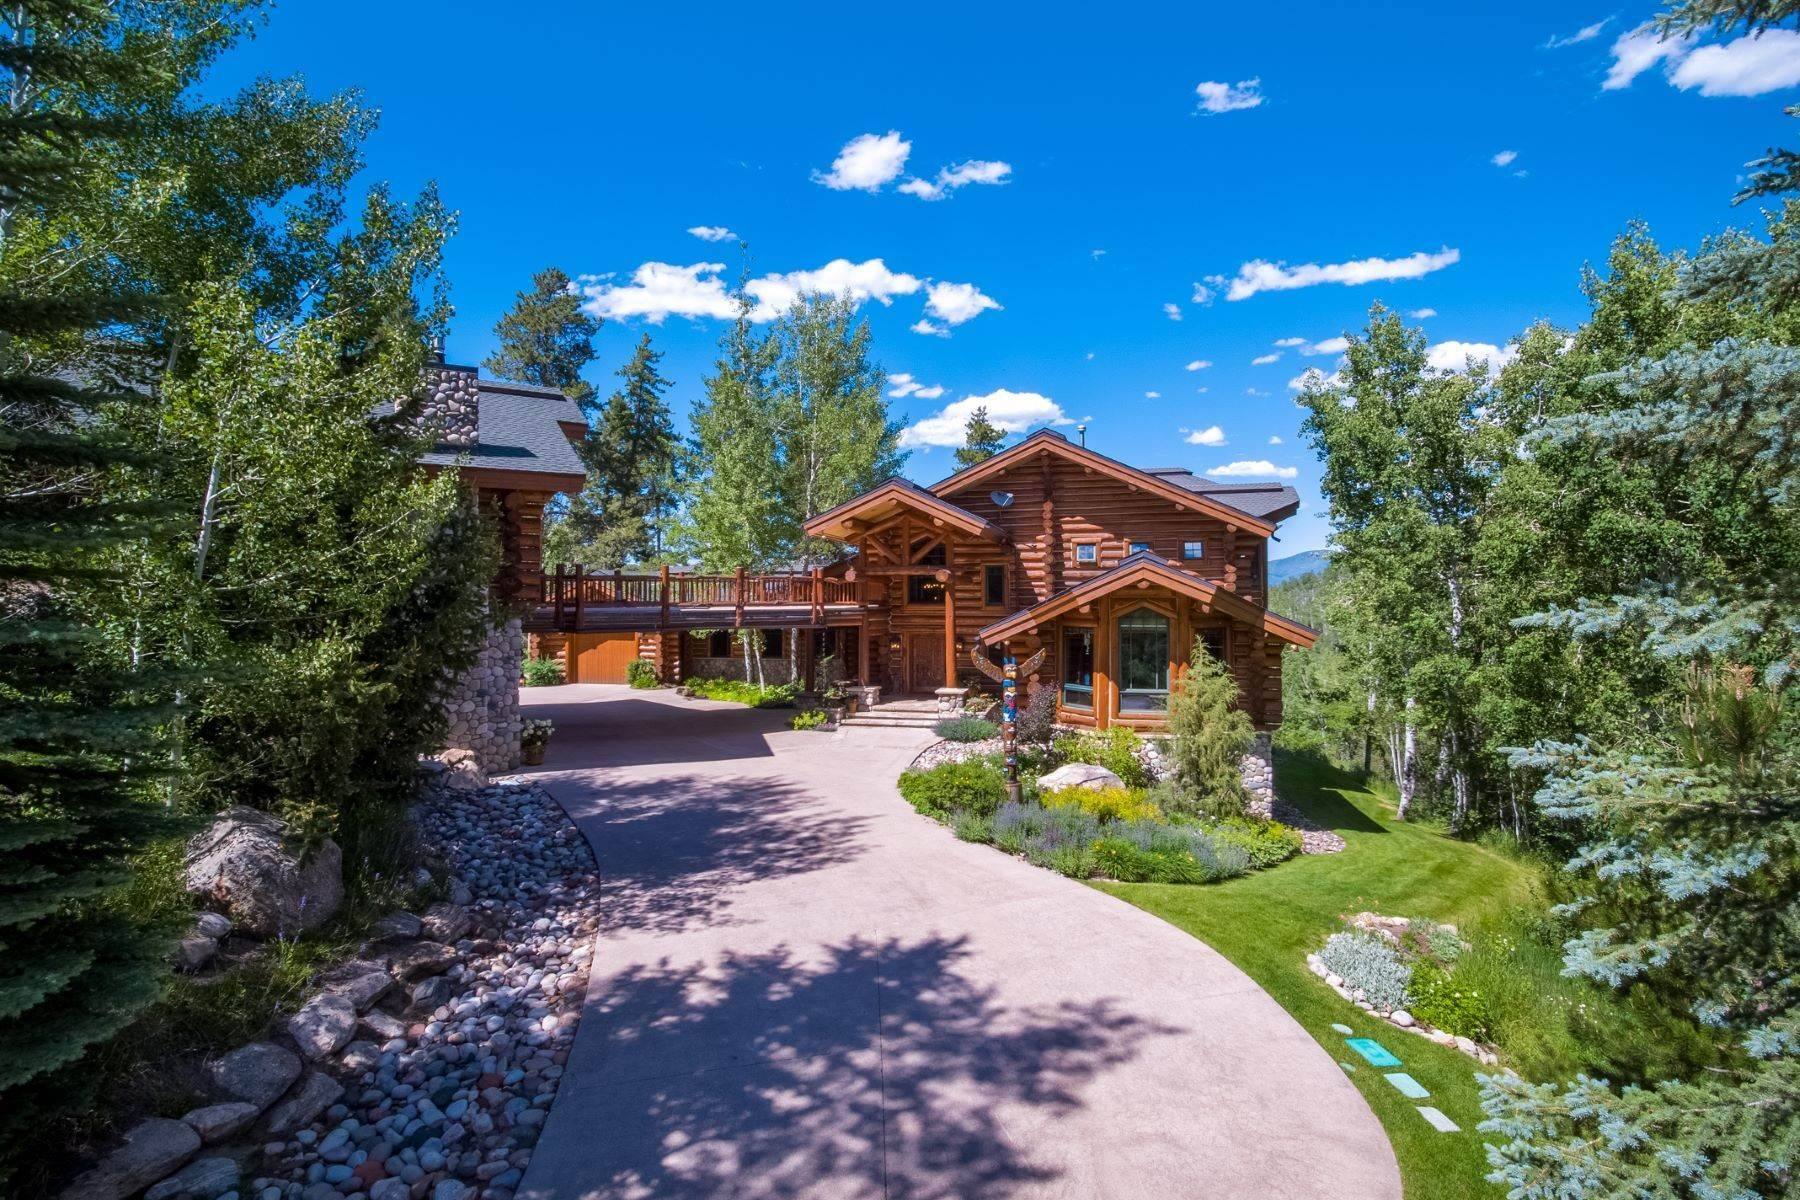 Single Family Homes for Sale at Aspenglen 27800 Wapiti Way Steamboat Springs, Colorado 80487 United States